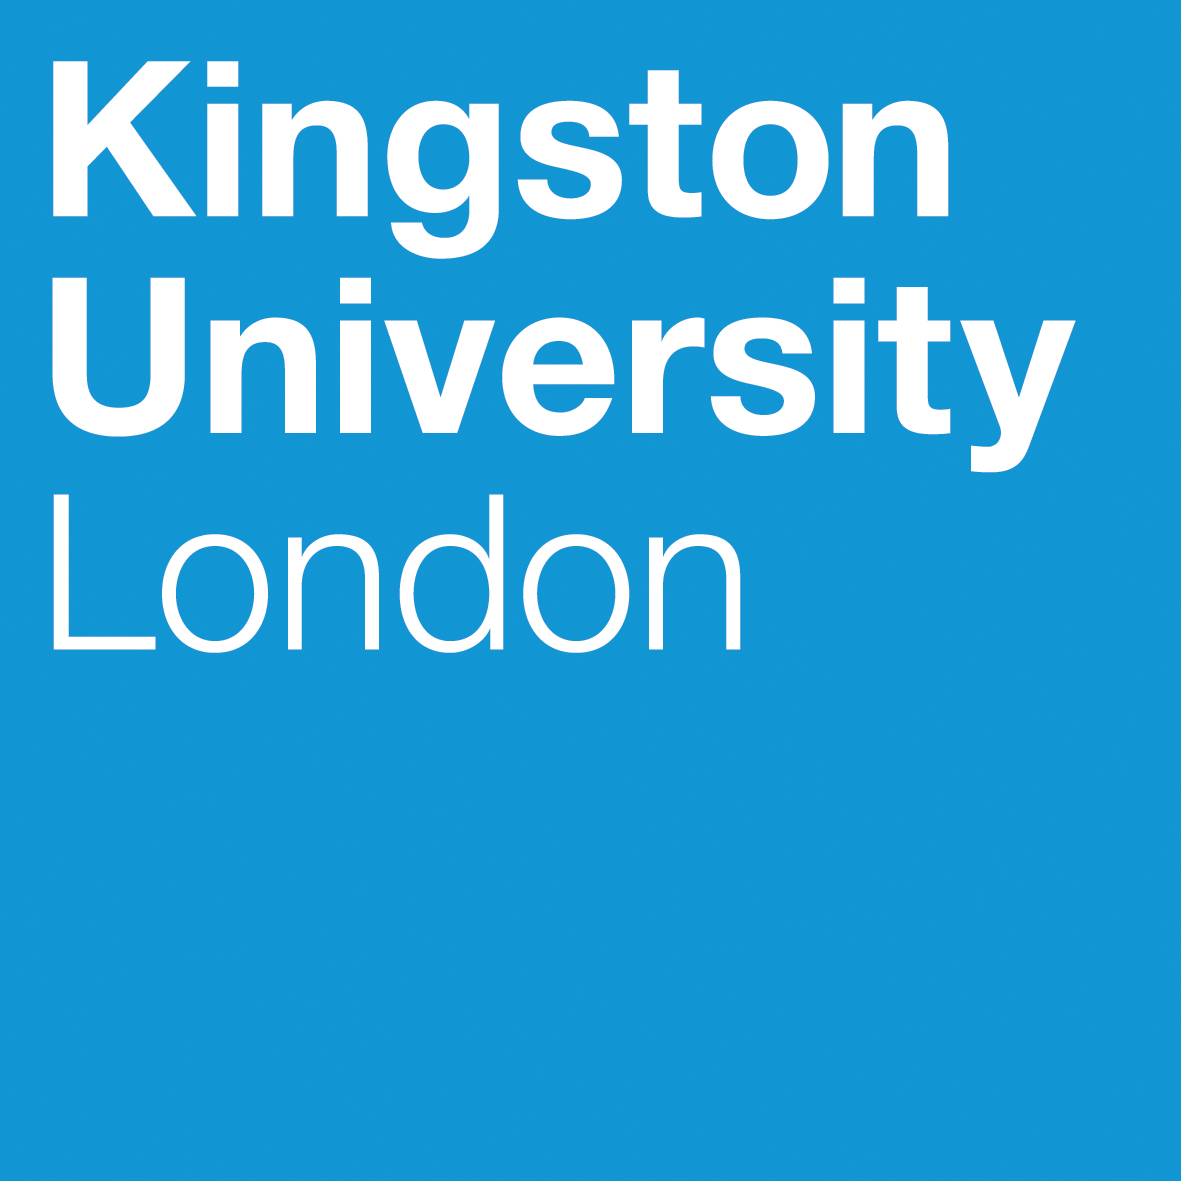 Kingston University img-responsive